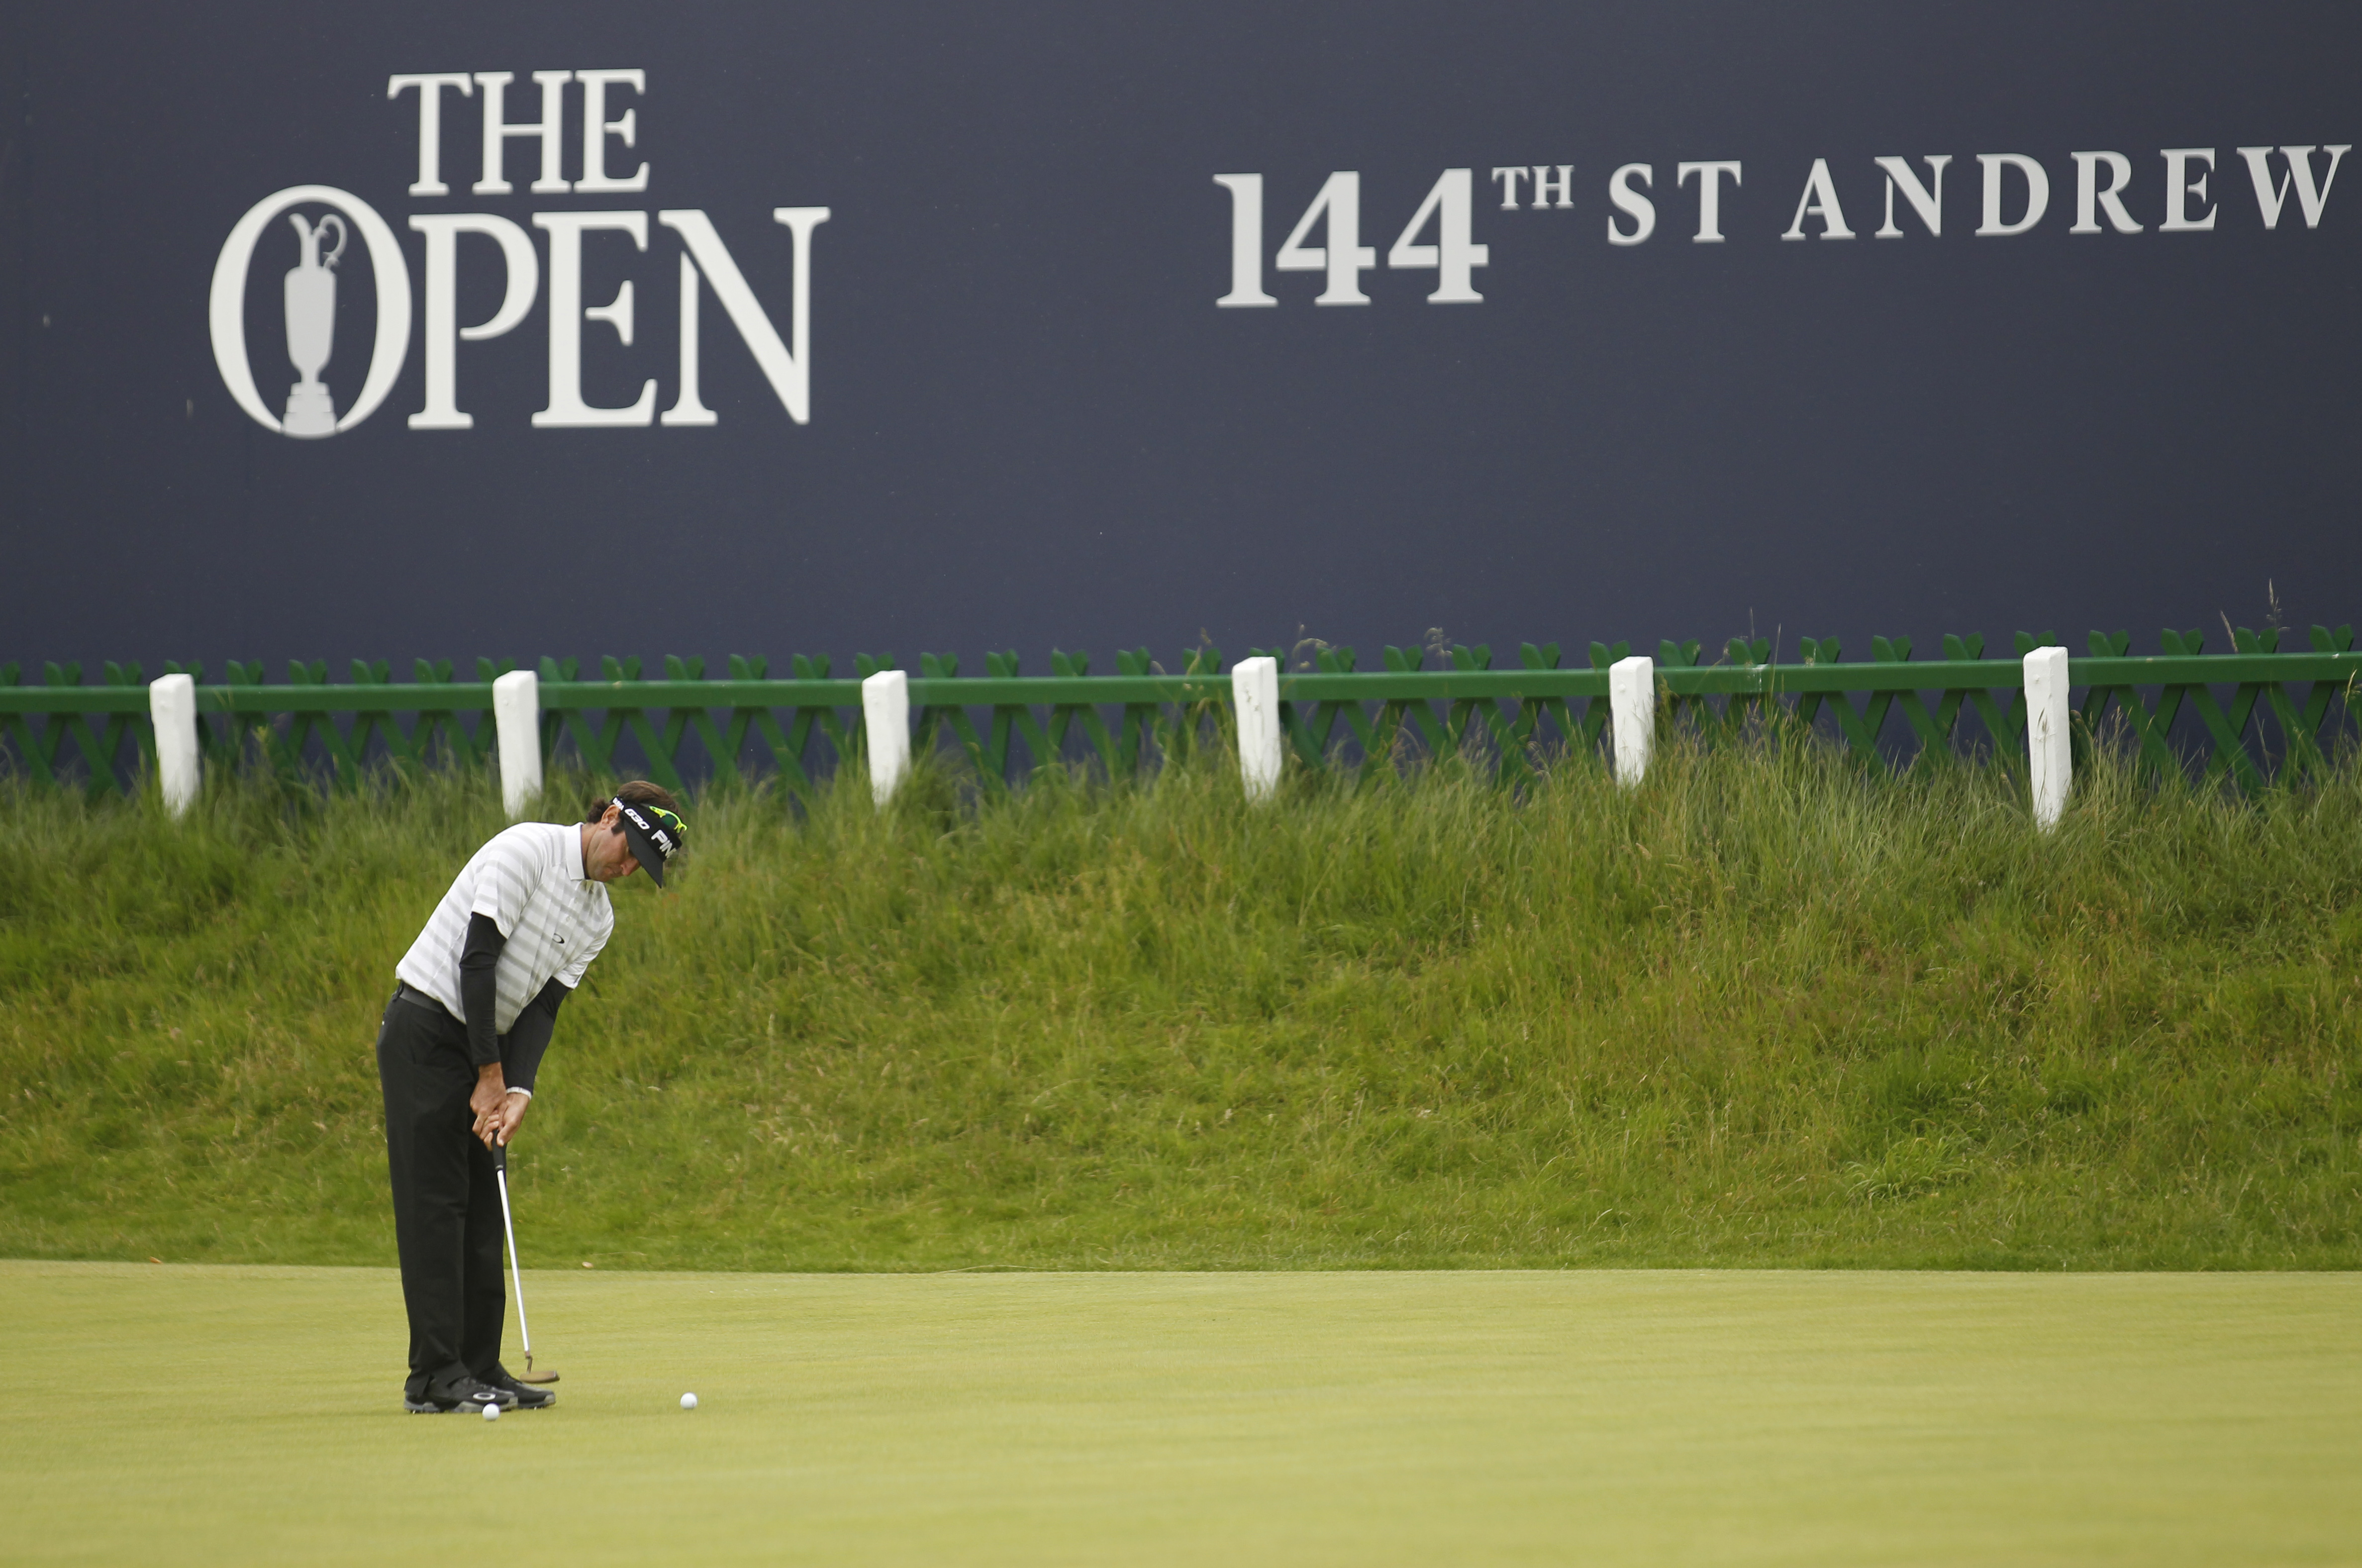 Bubba Watson from the U.S putts on the 18th green during a practice round at St. Andrews Golf Club prior to the start of the British Open Golf Championship, in St. Andrews, Scotland, Monday, July 13, 2015. (AP Photo/Peter Morrison)